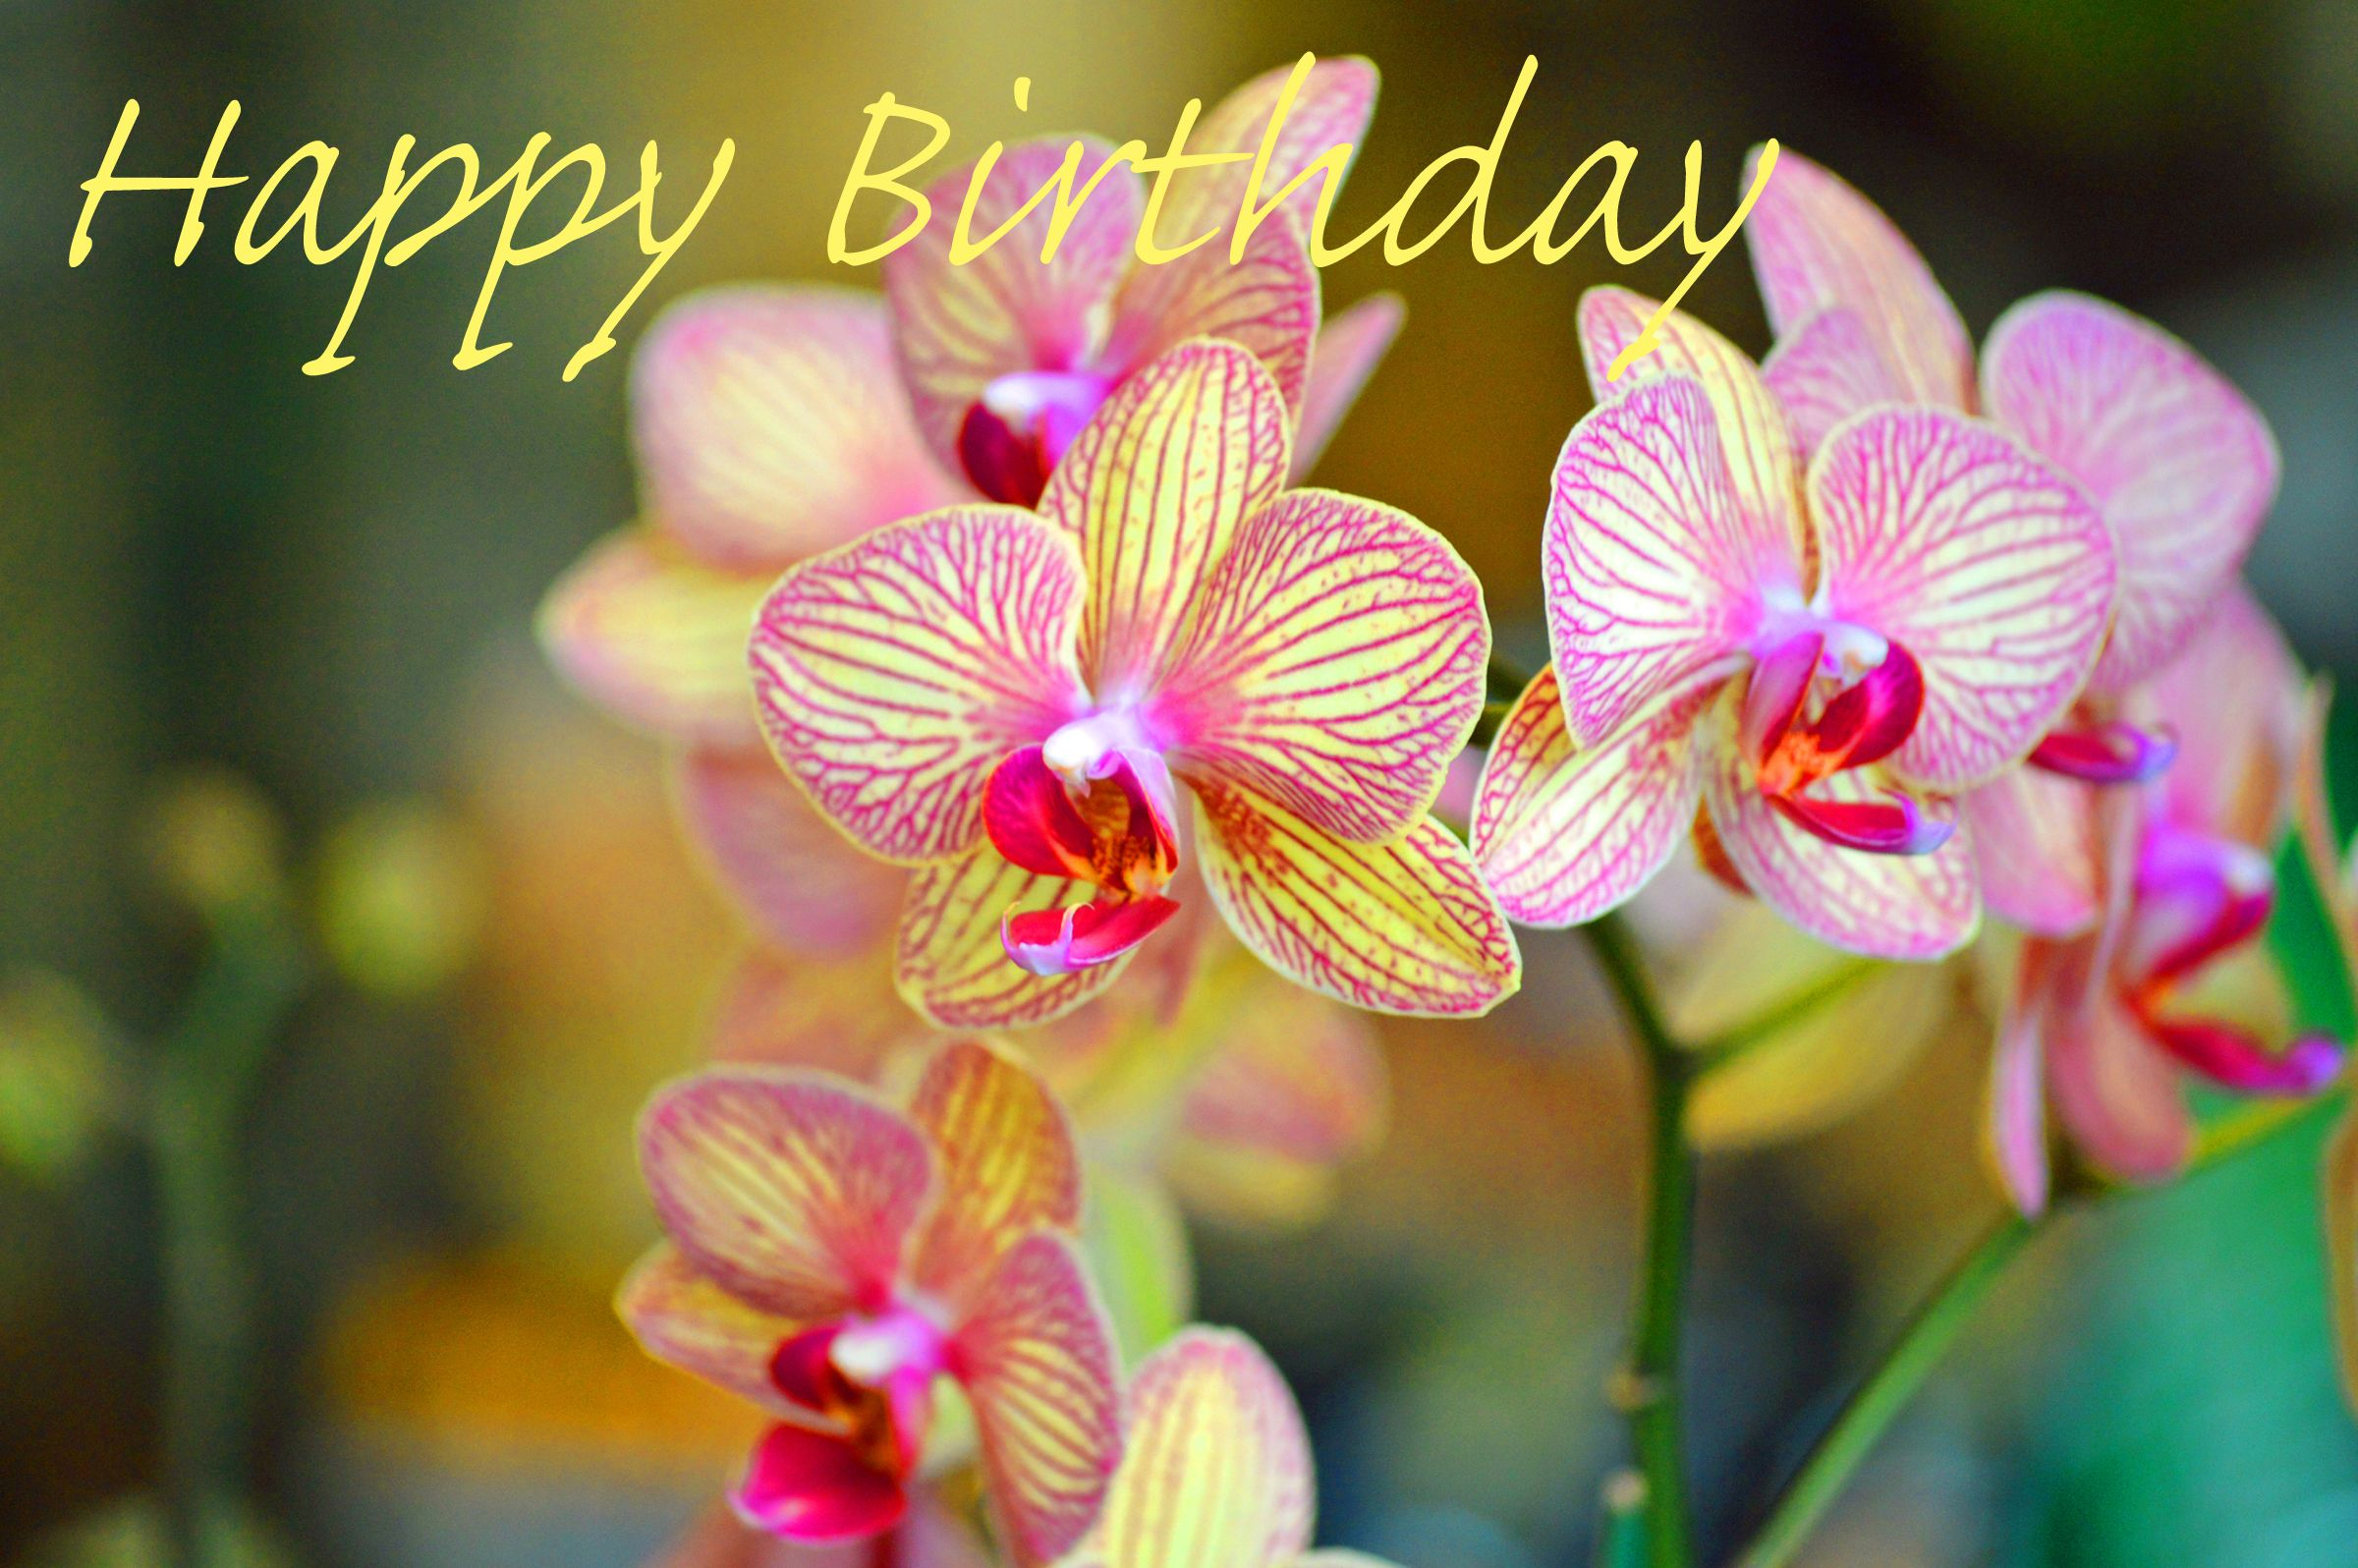 Beautiful Orchids With A Happy Birthday Greeting That Can Be